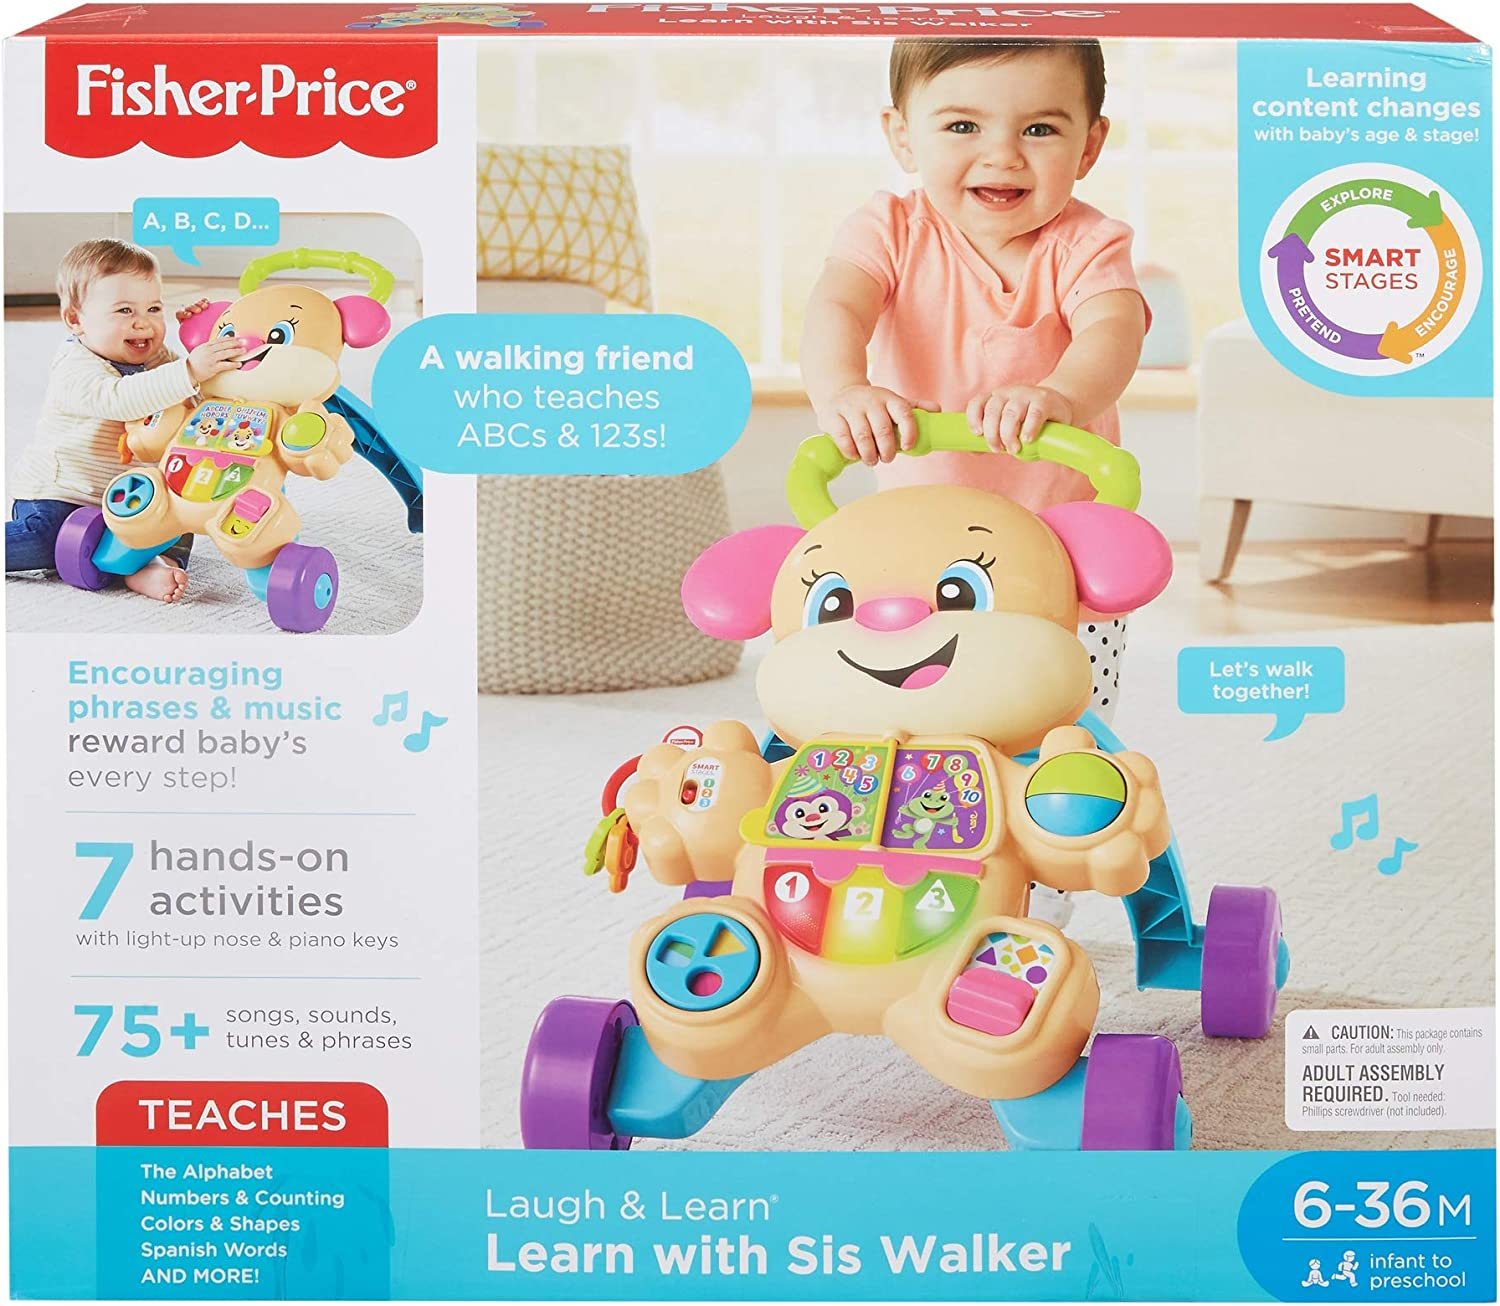 Amazon.com: Fisher-Price Laugh & Learn Etapas inteligentes ...